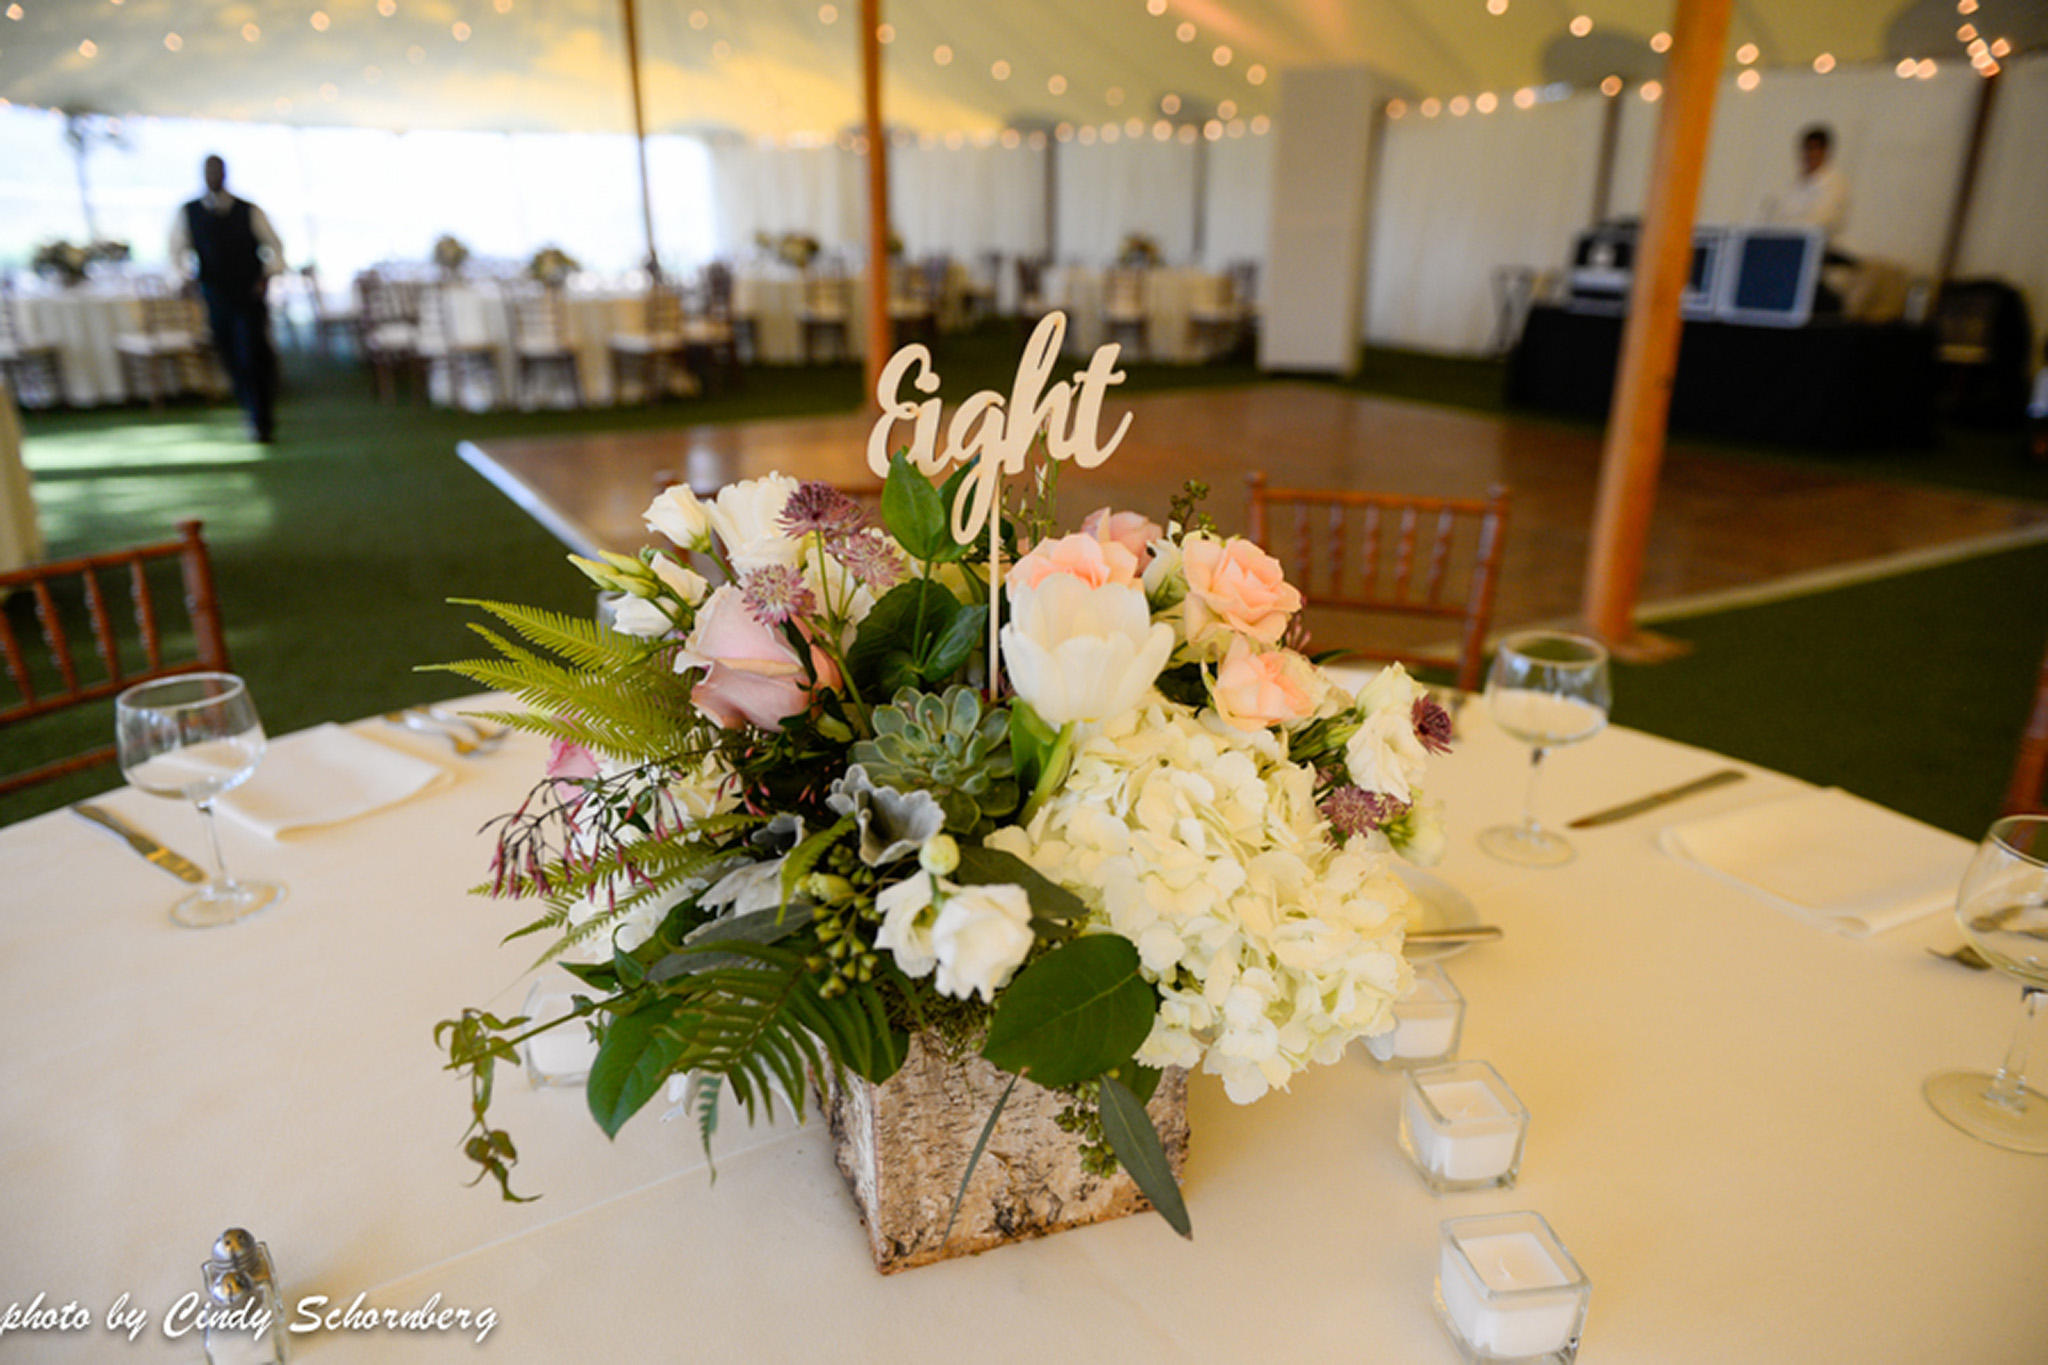 vineyard_weddings_Charlottesville_Virginia_005 2.jpg